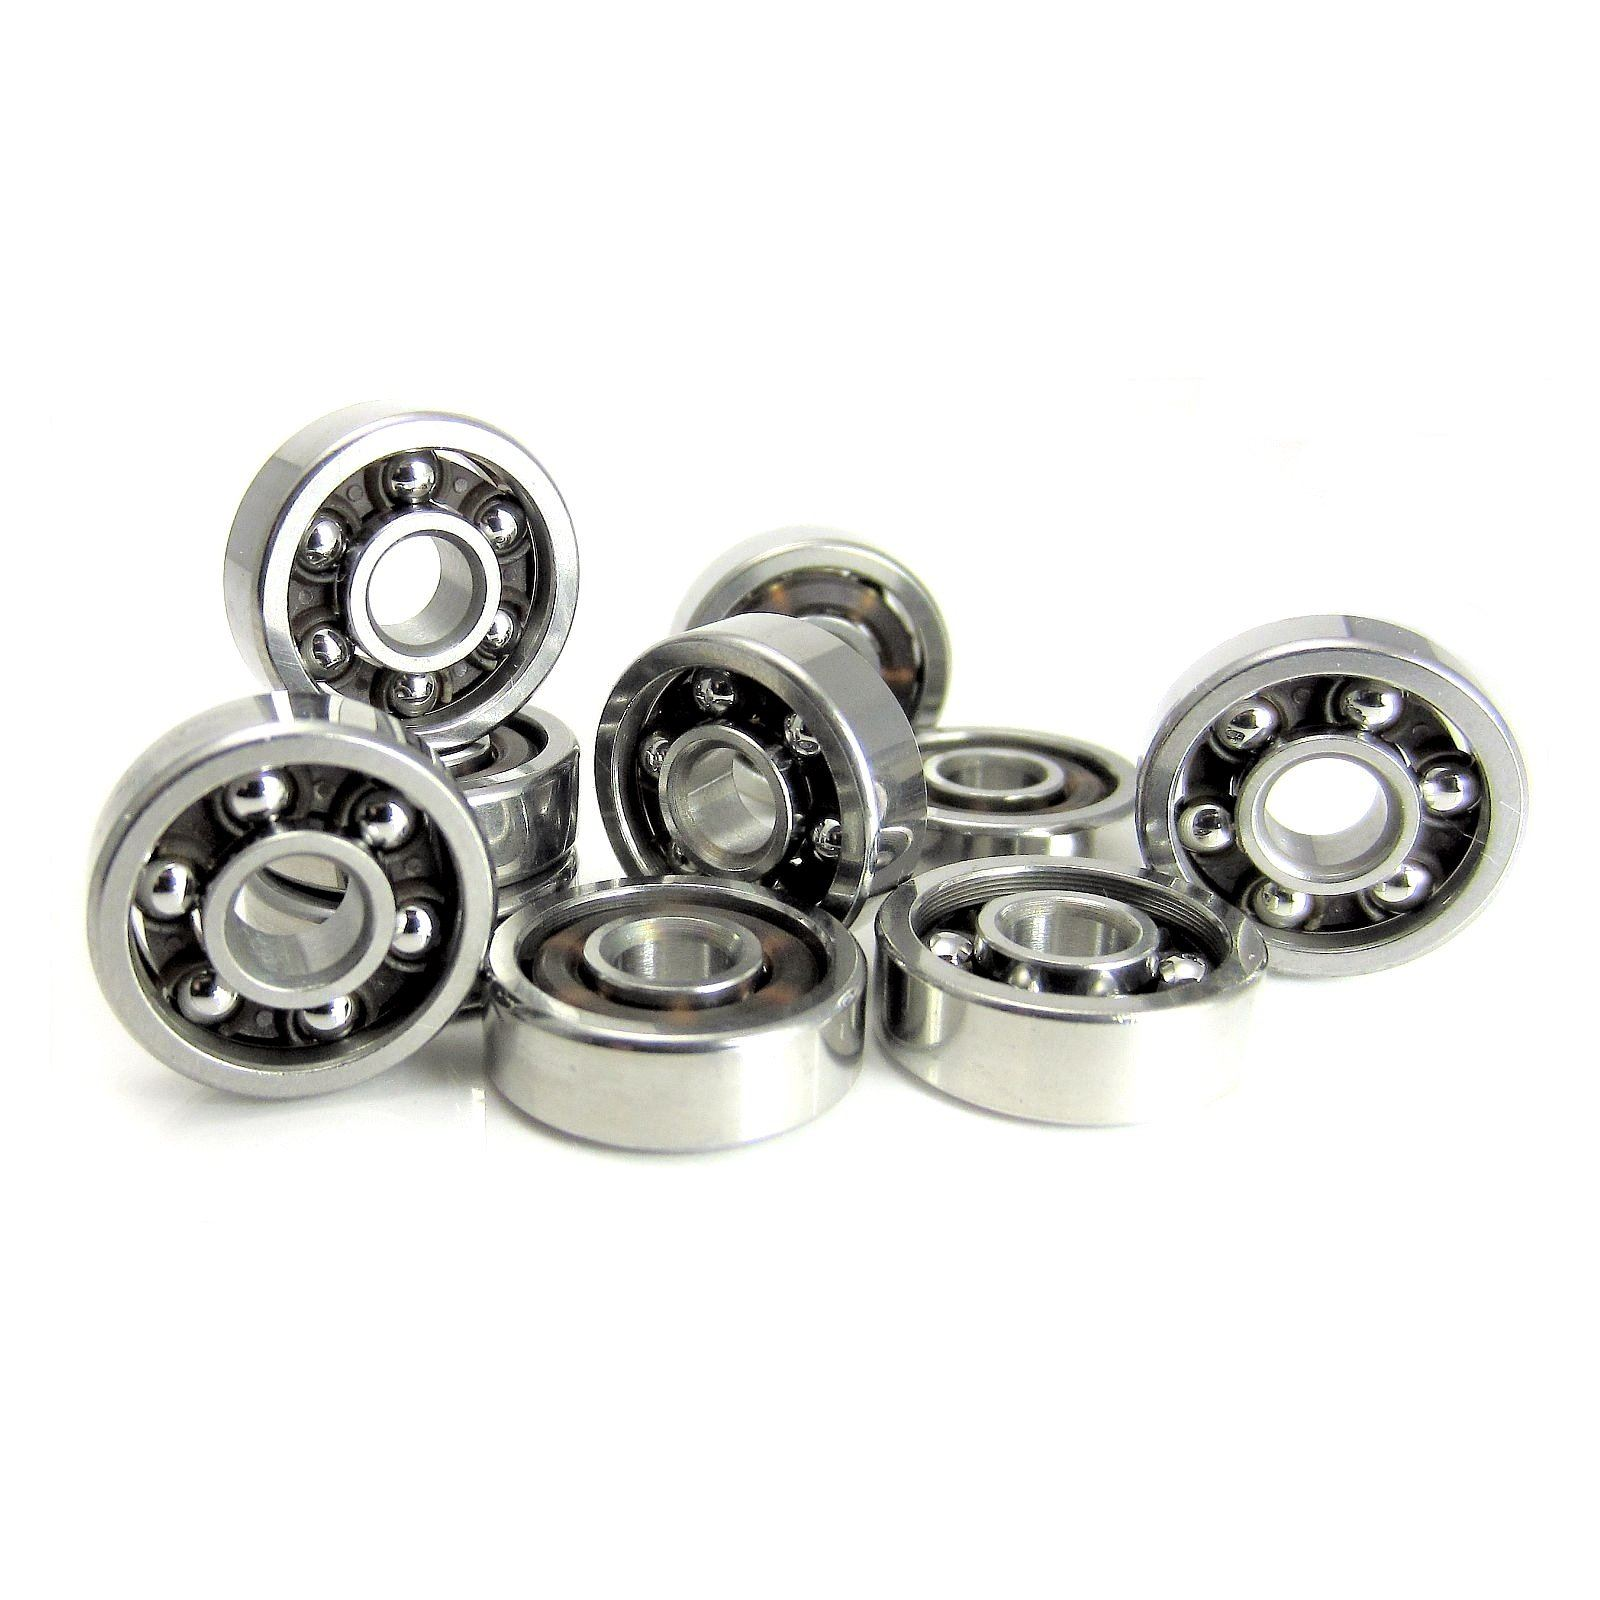 5x16x5mm 625  Open A5 Precision Ball Bearings (10) by TRB RC - trb-rc-bearings